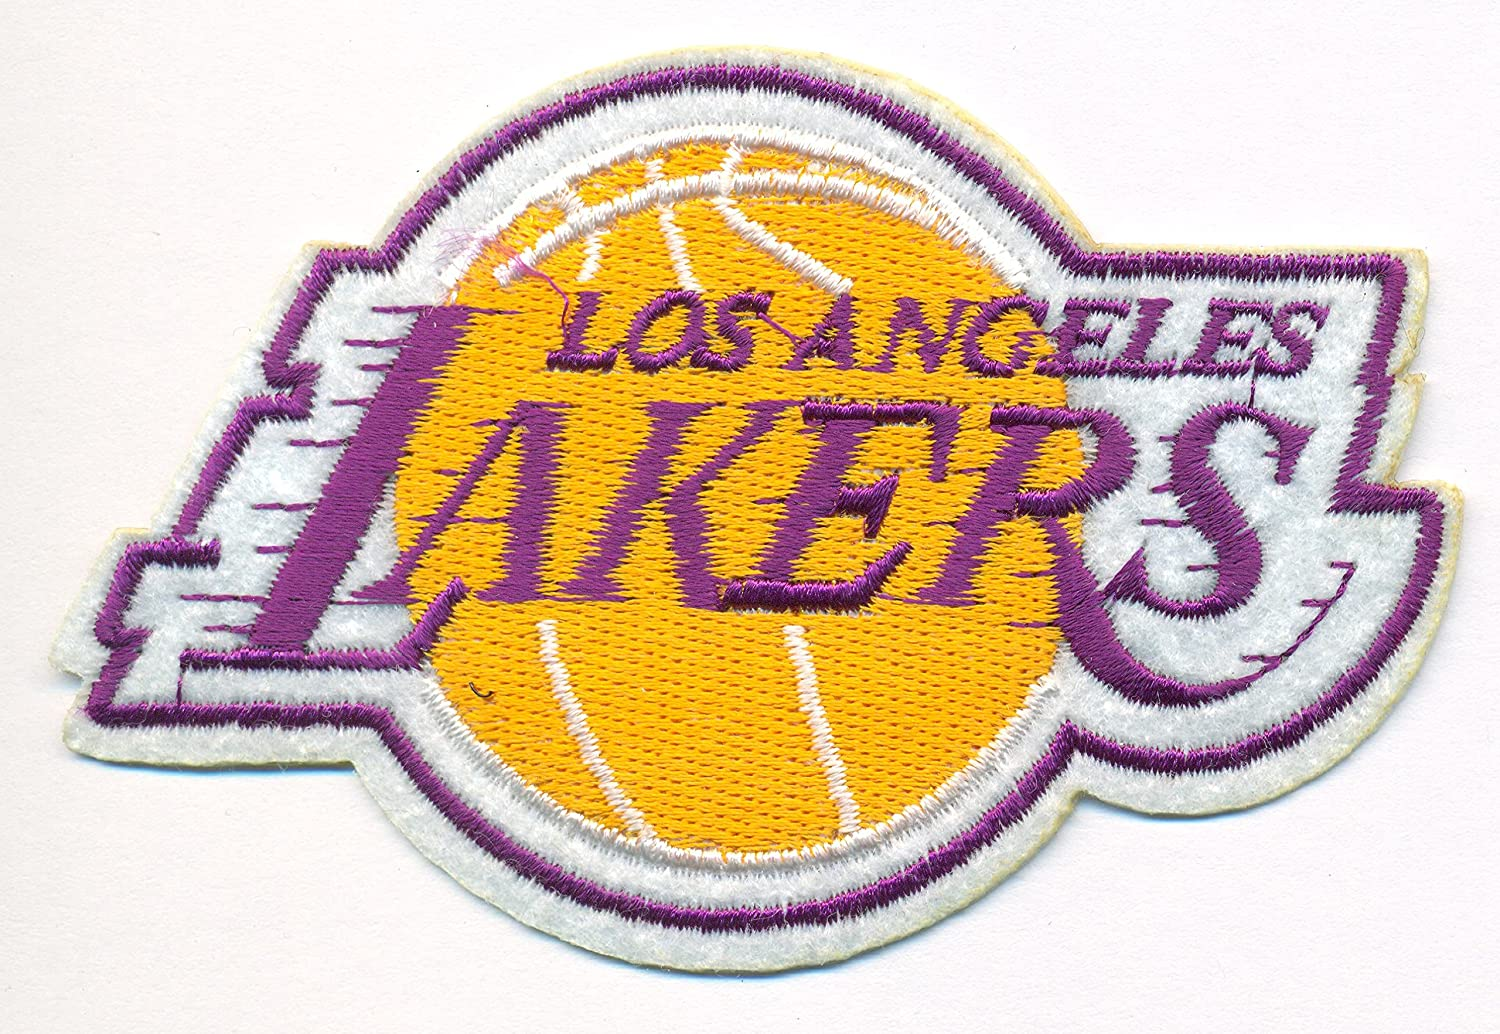 Los angeles lakers logo basketball nba embroidered iron on patches los angeles lakers logo basketball nba embroidered iron on patches hat jersey 4 x 2 voltagebd Image collections